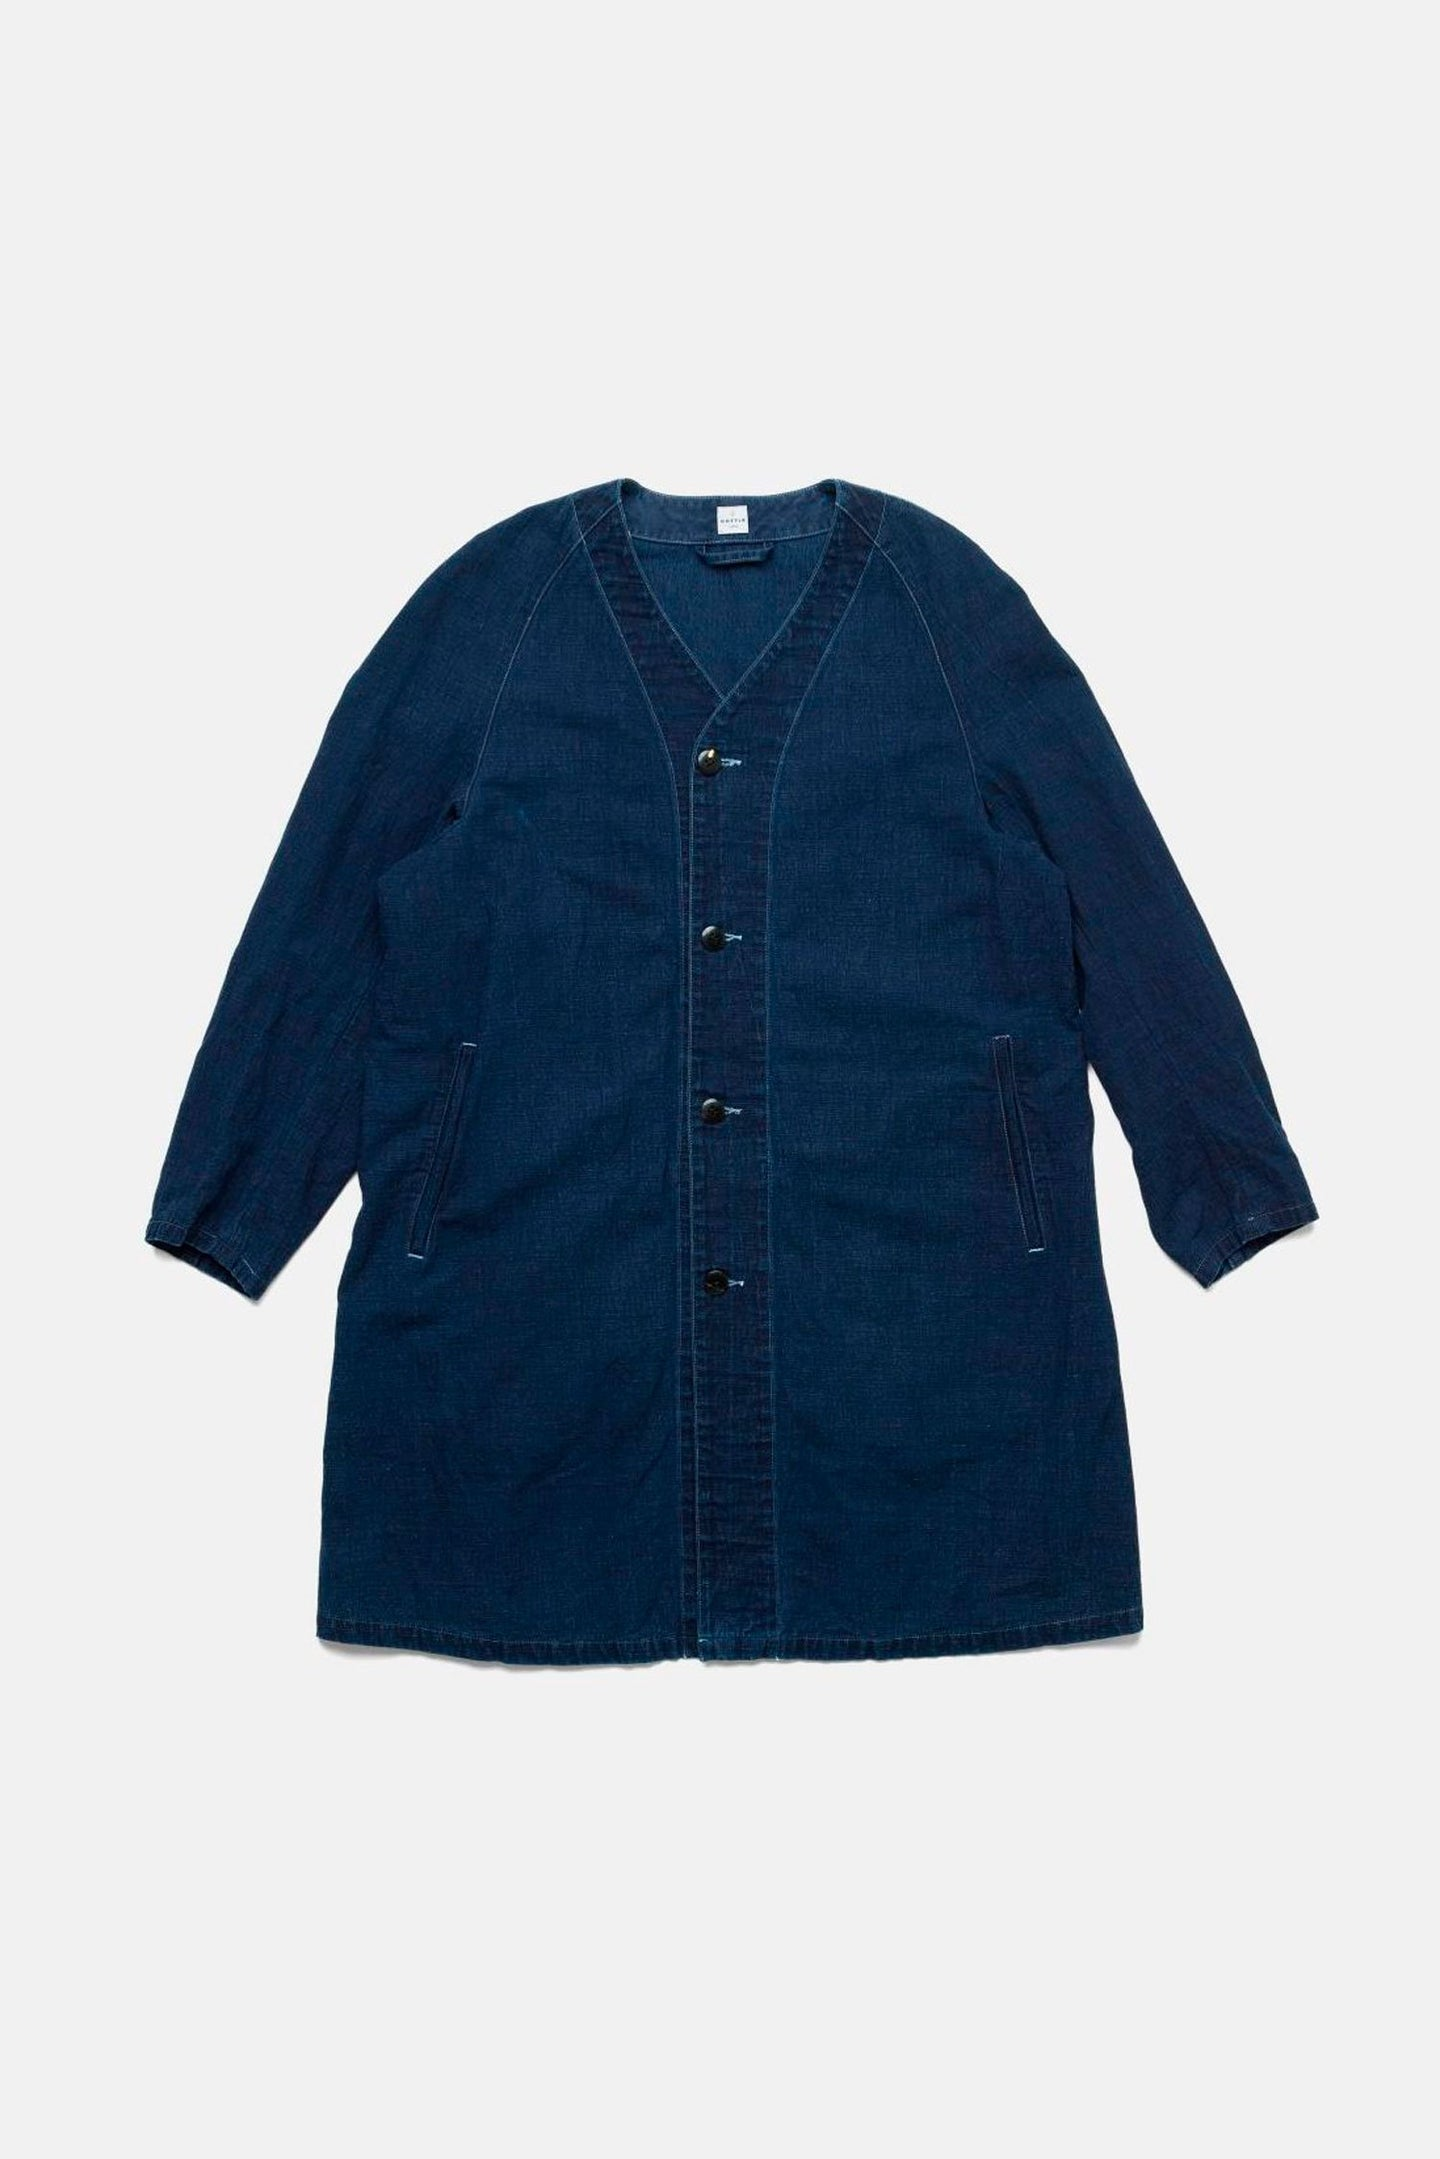 Itto Unsai Town Coat in Authentic Indigo by Cottle